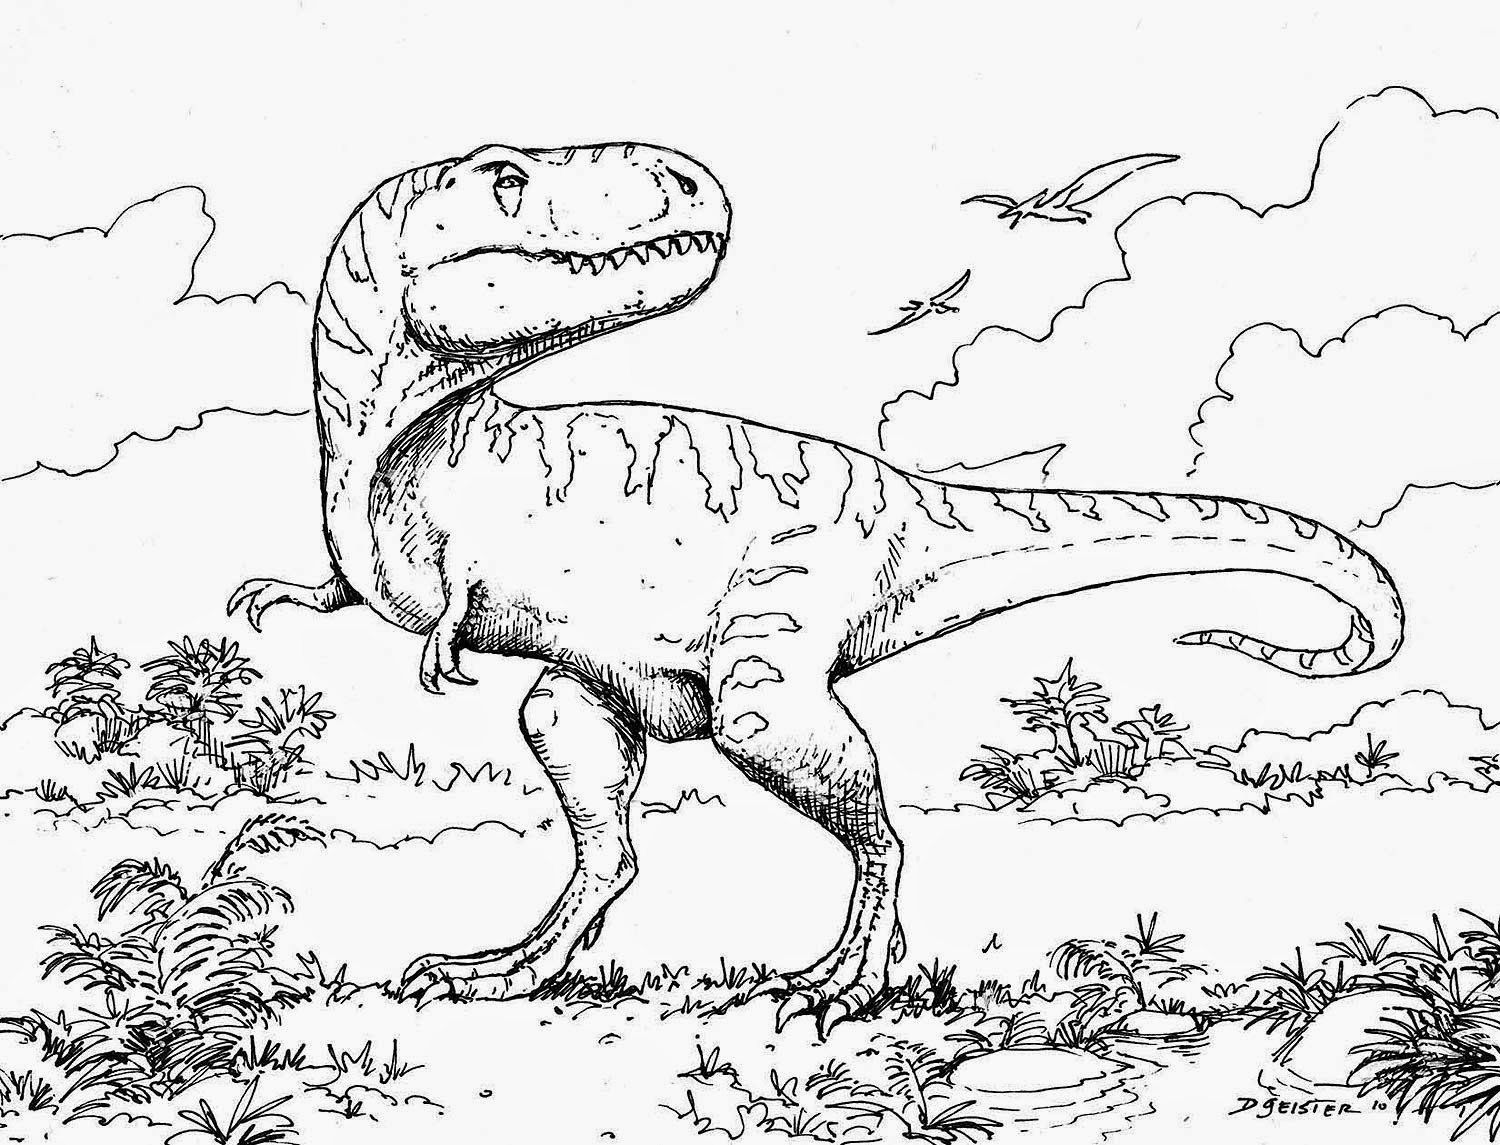 free printable coloring pages of dinosaurs coloring pages dinosaur free printable coloring pages dinosaurs coloring of printable pages free